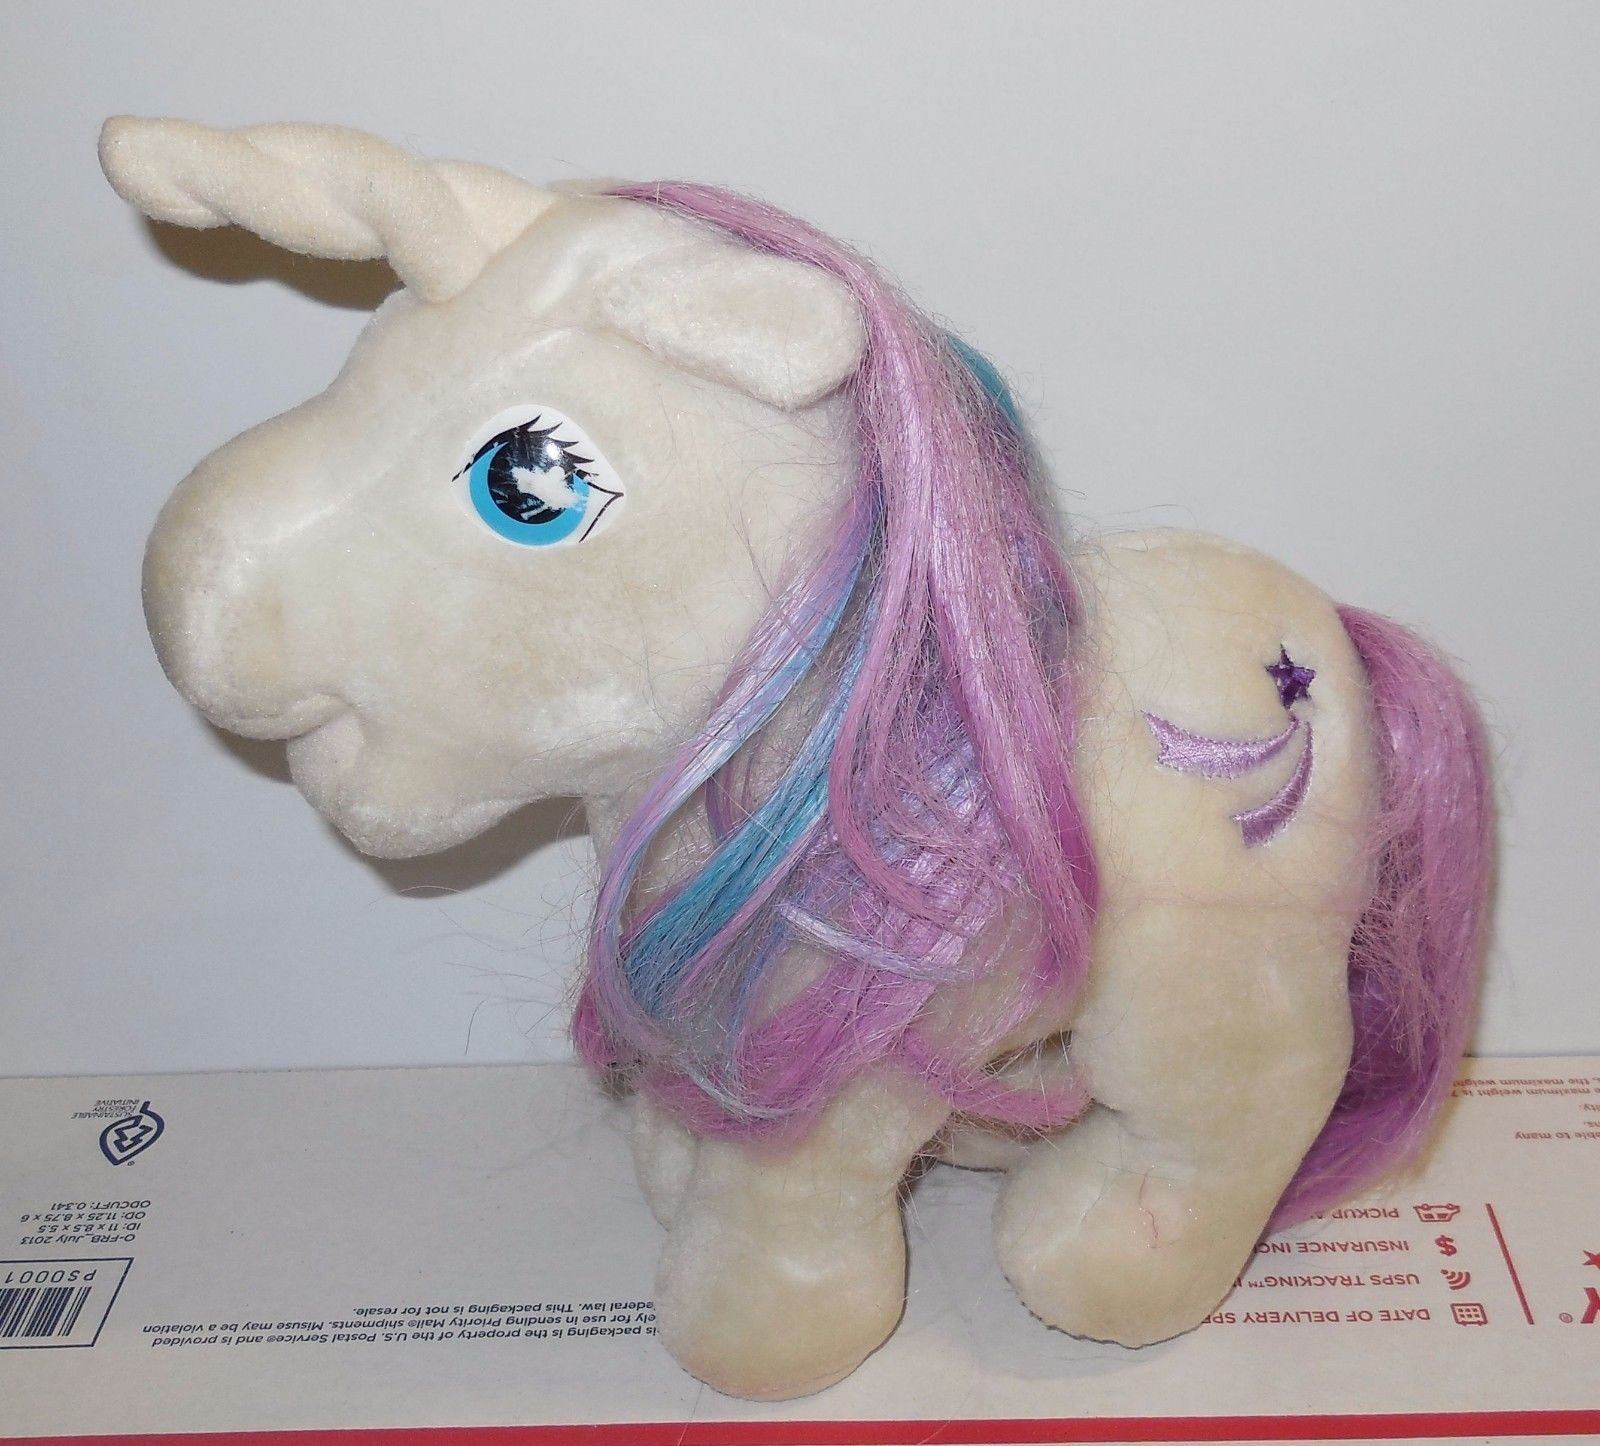 My Little Pony Bedroom Decor Awesome 1984 My Little Pony Hasbro softies Glory G1 and 50 Similar Items